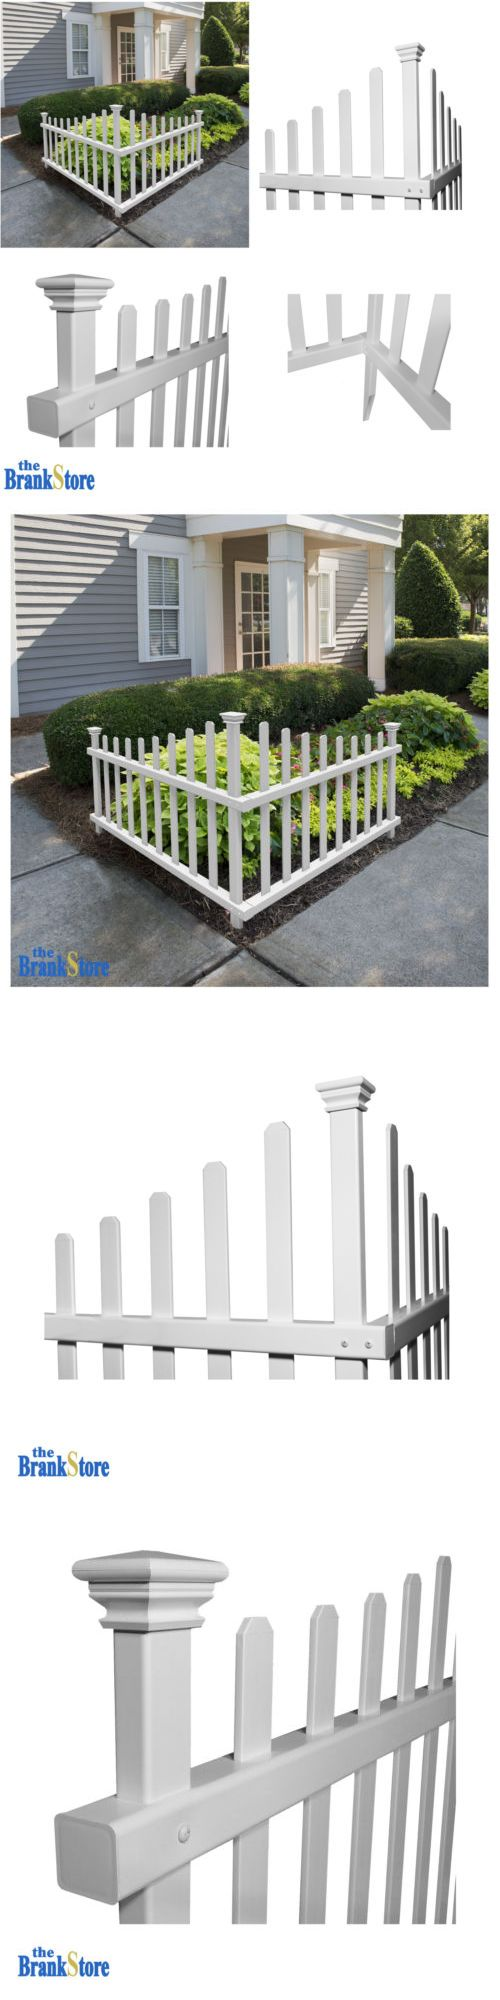 Square aluminum colonial columns prices amp ordering hoover - Fence Pickets 180986 Vinyl Picket Fence Outdoor Corner Decorative White Garden Accent Driveway Decor